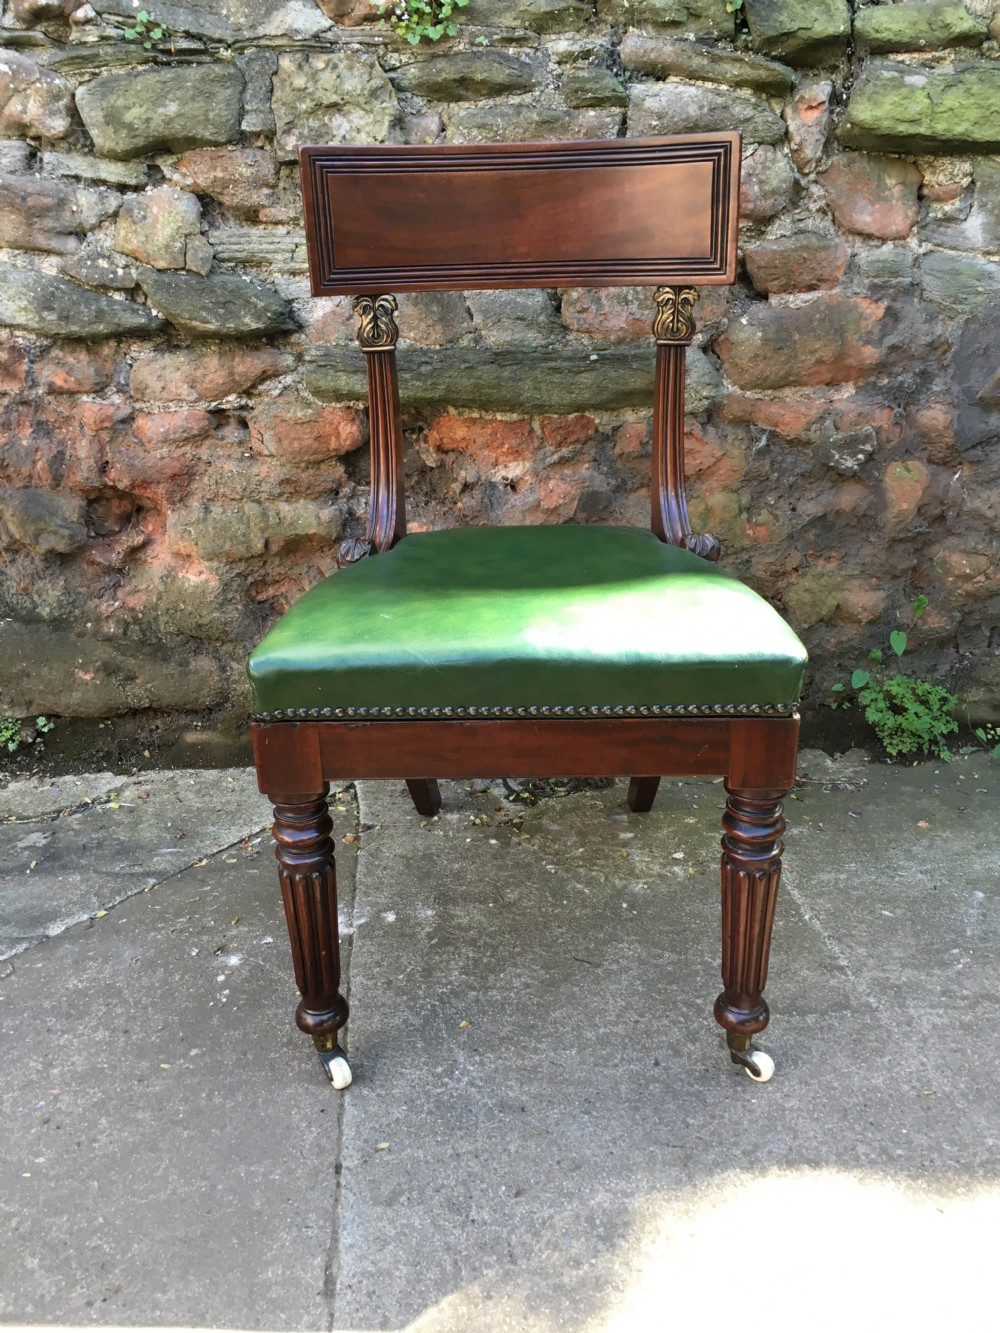 c19th desk chair in the manner of gillows